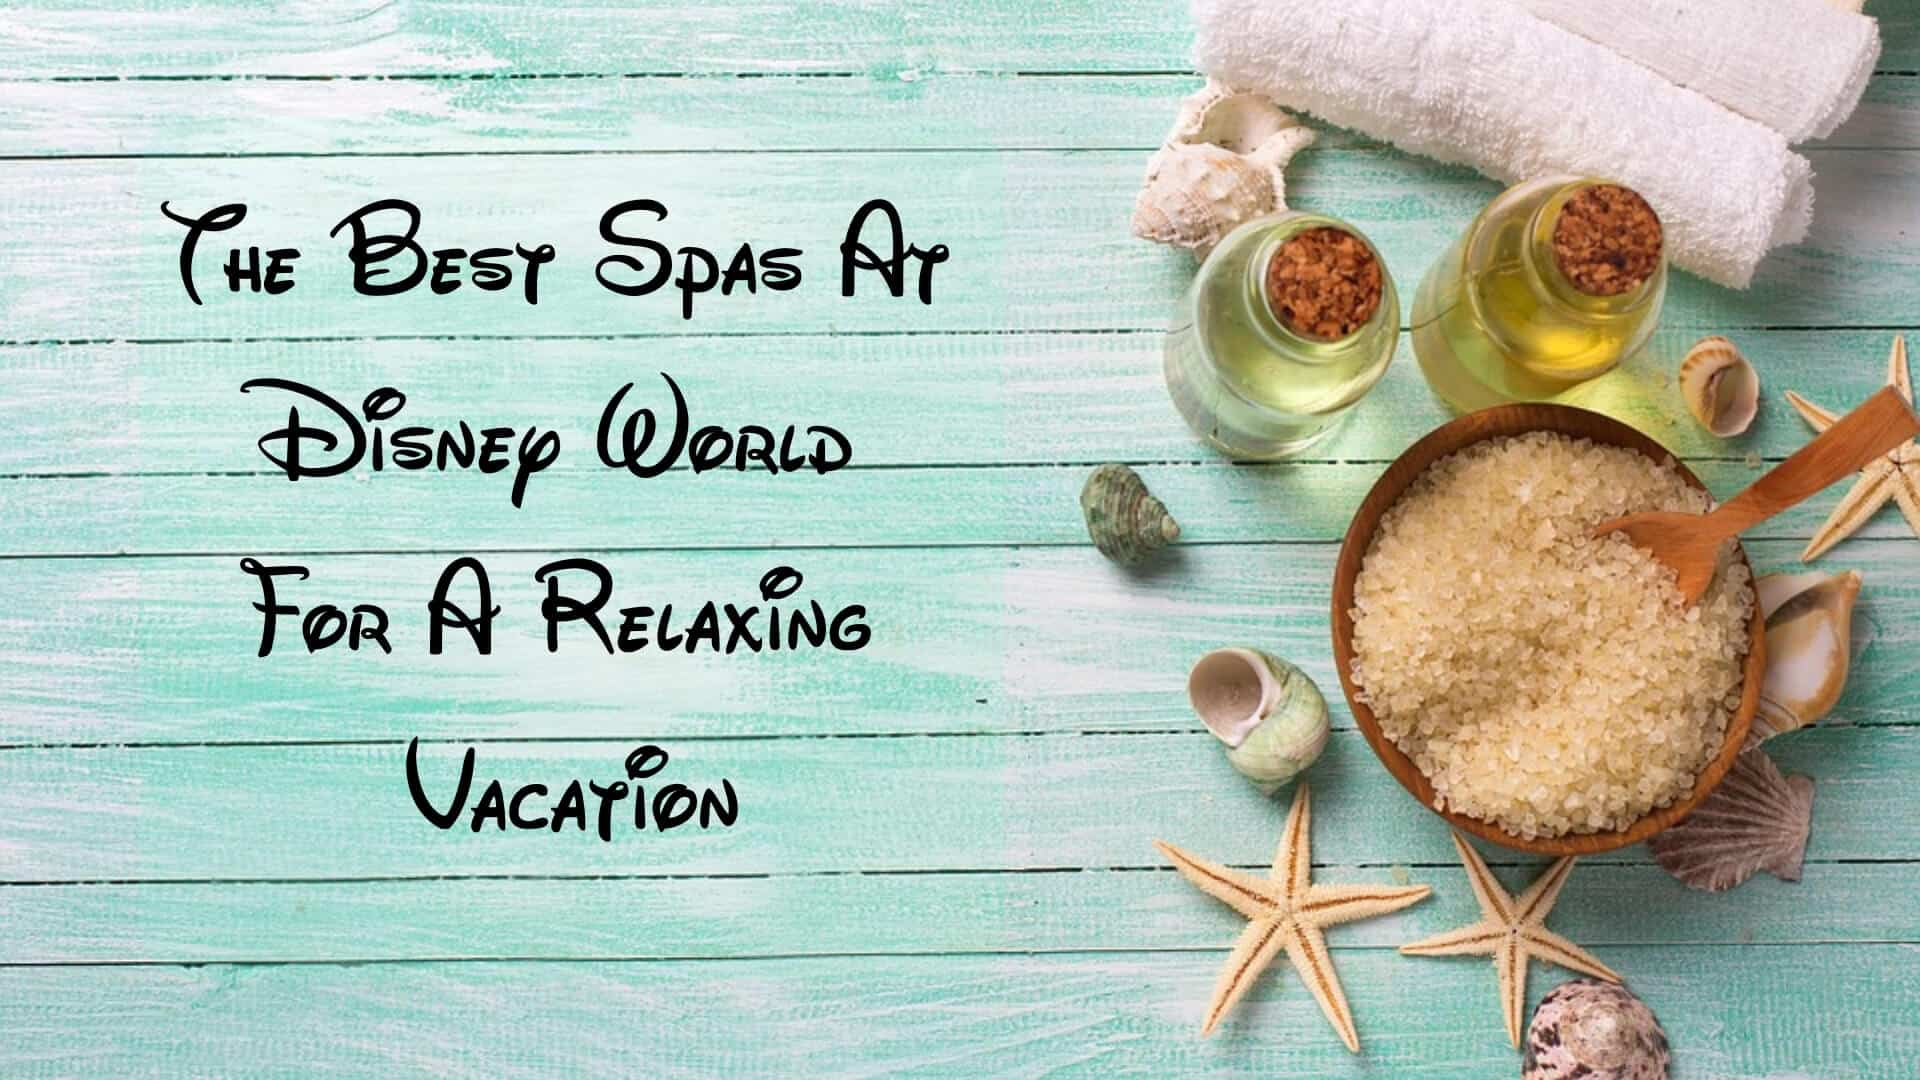 The Best Spas At Disney World For A Relaxing Vacation Tips 1